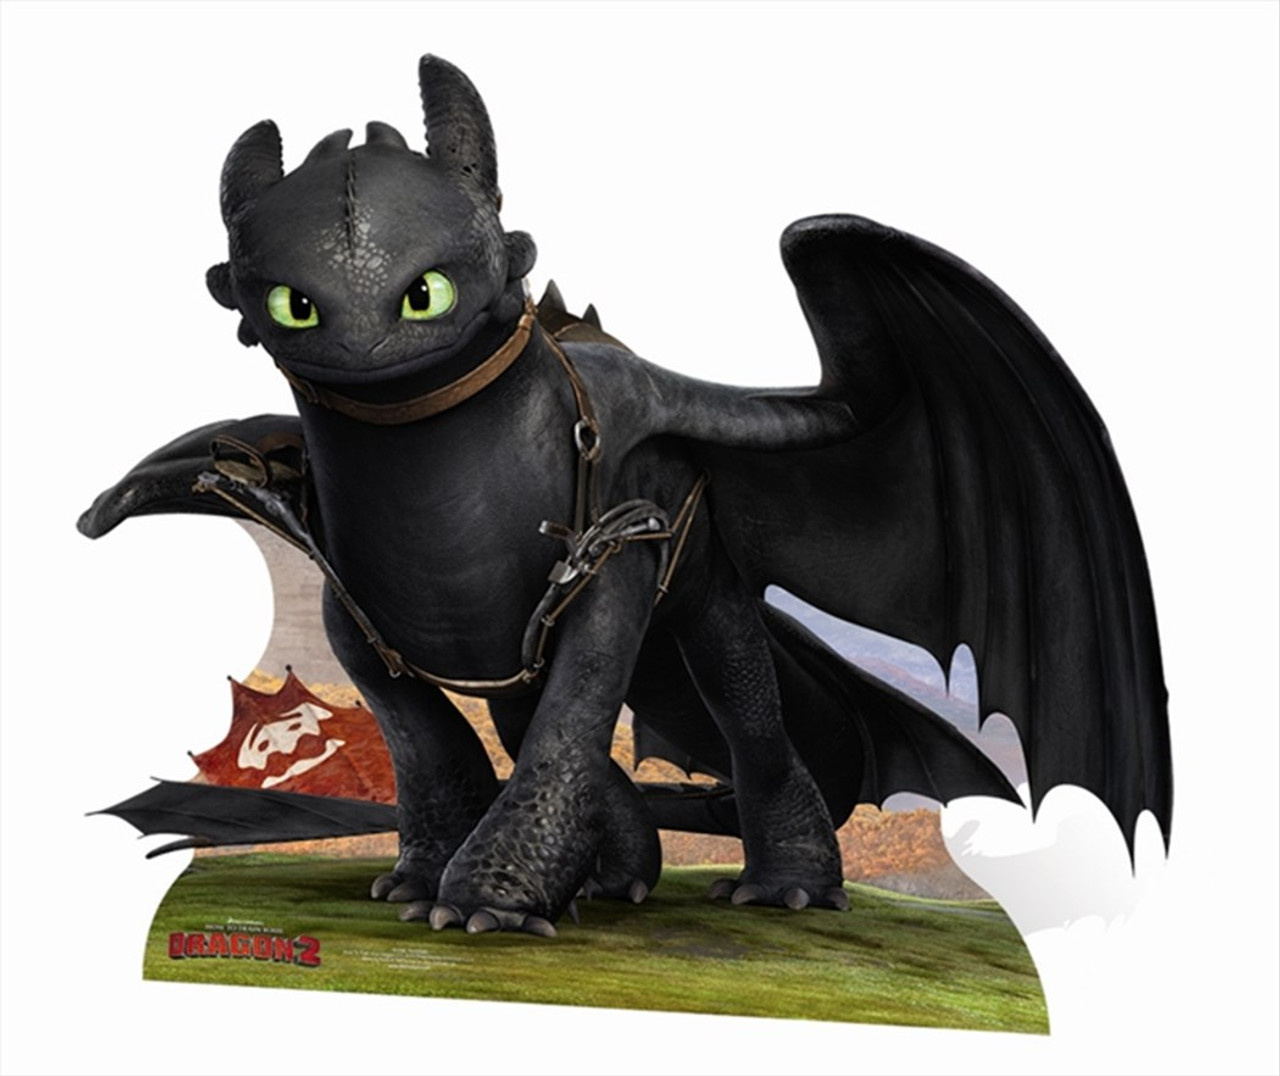 Toothless From How To Train Your Dragon 2 Cardboard Cutout Standee Standup Buy How To Train